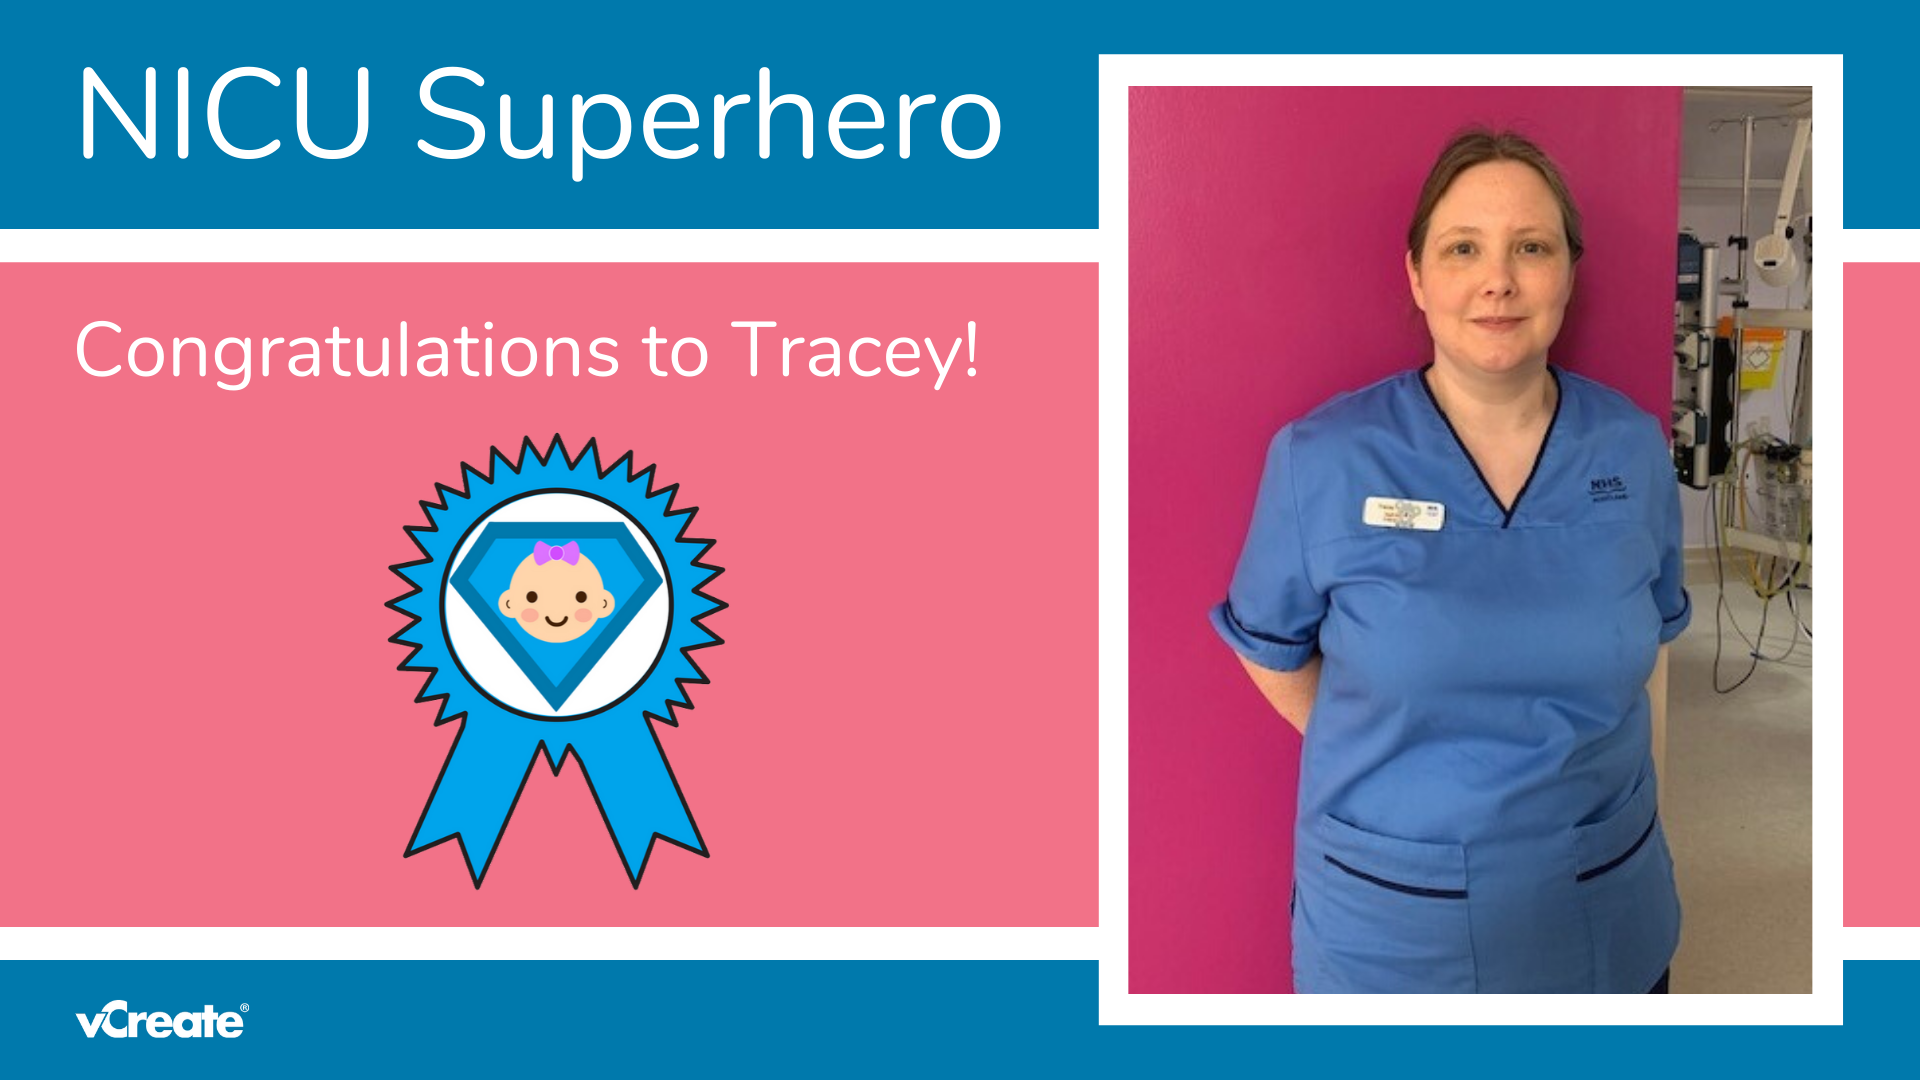 Today's NICU Superhero is Tracey from the RAH in Paisley!